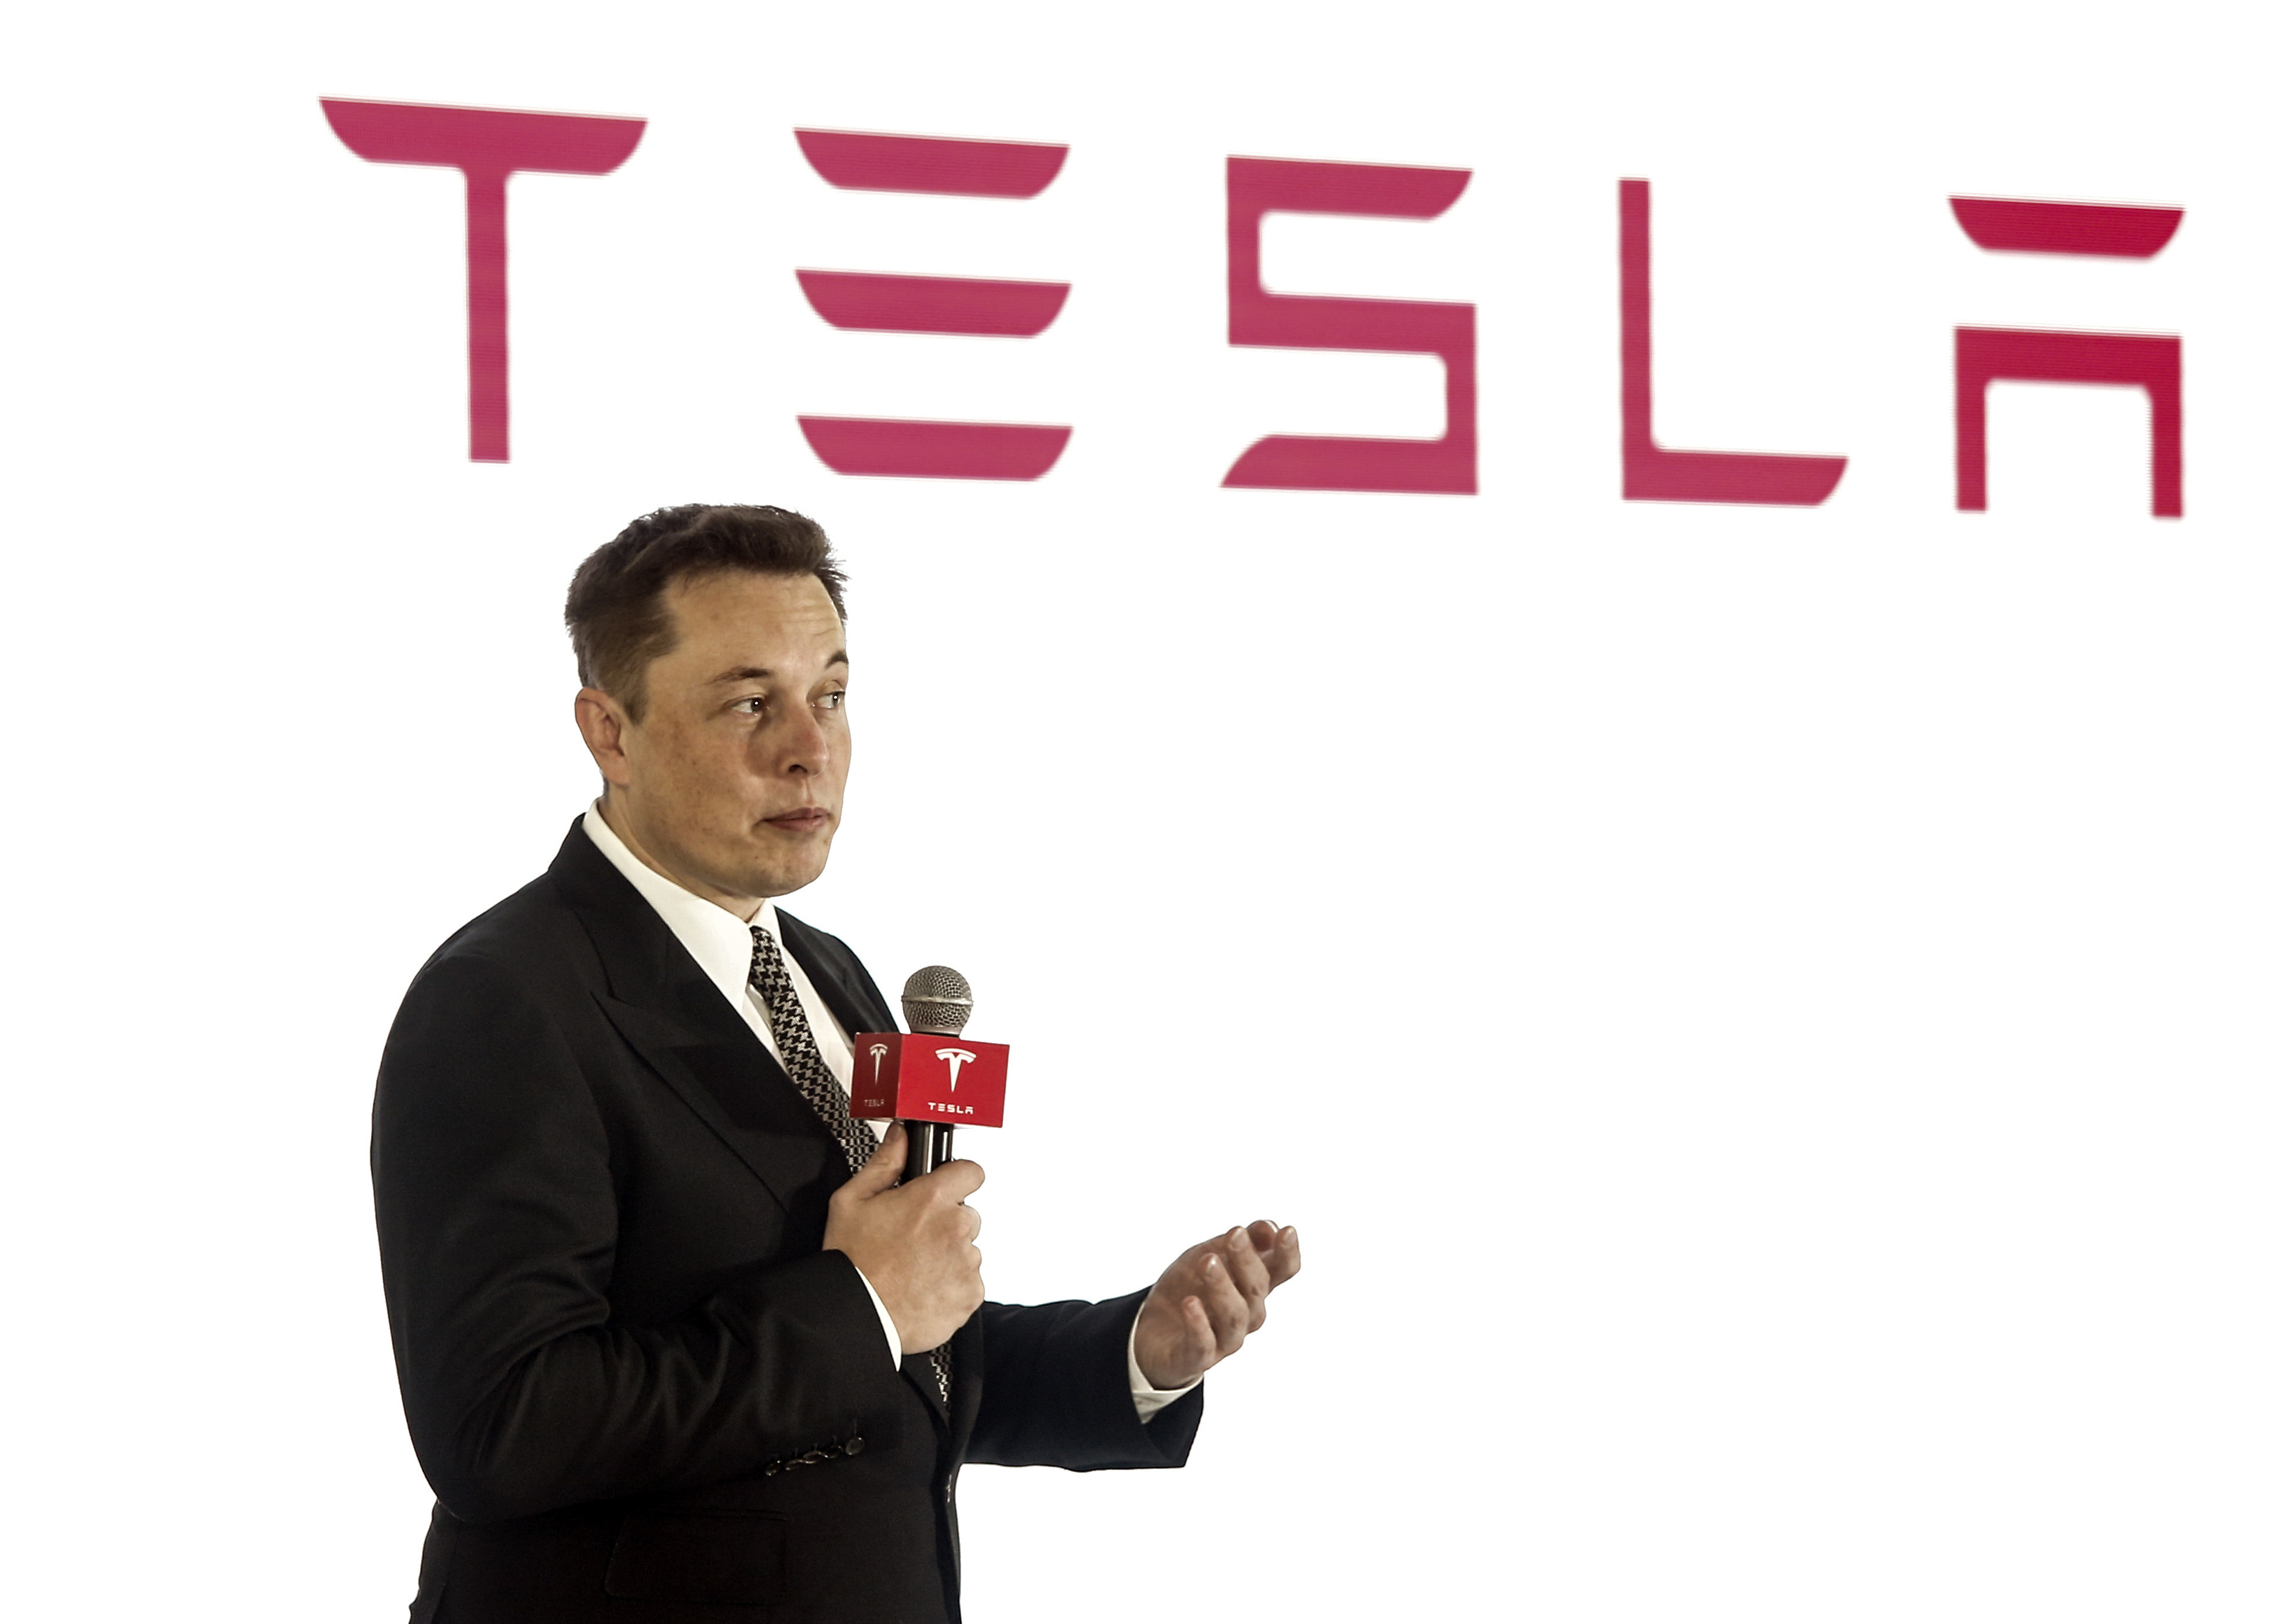 Elon Musk, chairman, CEO and product architect of Tesla Motors.